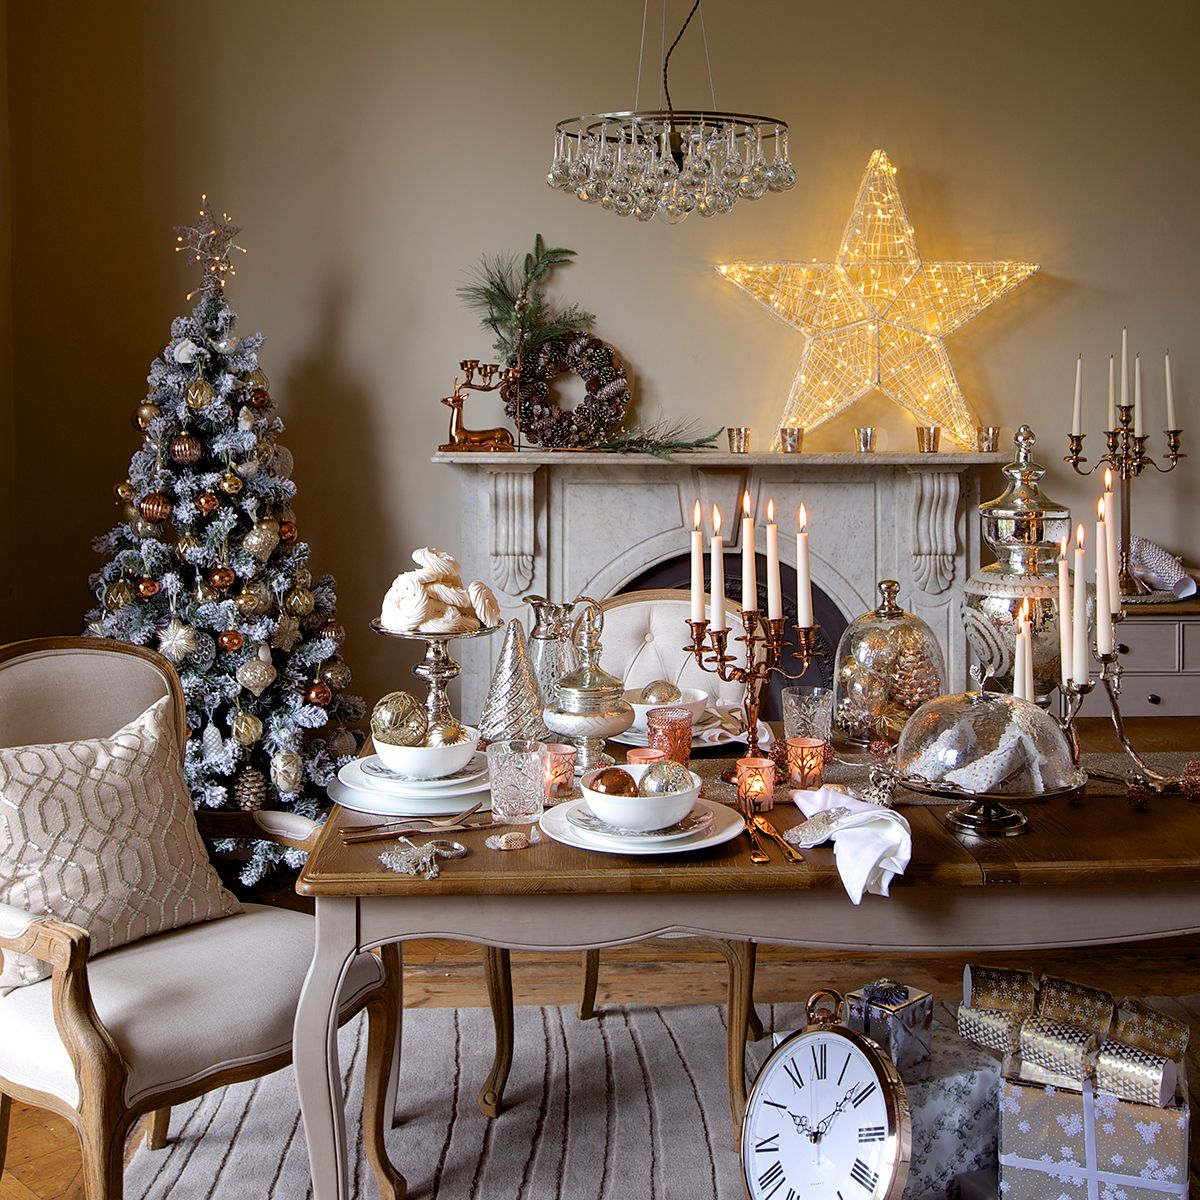 Christmas Table Decorations For Festive Dining Christmas Table Decorations Christmas Living Rooms Table Decorations